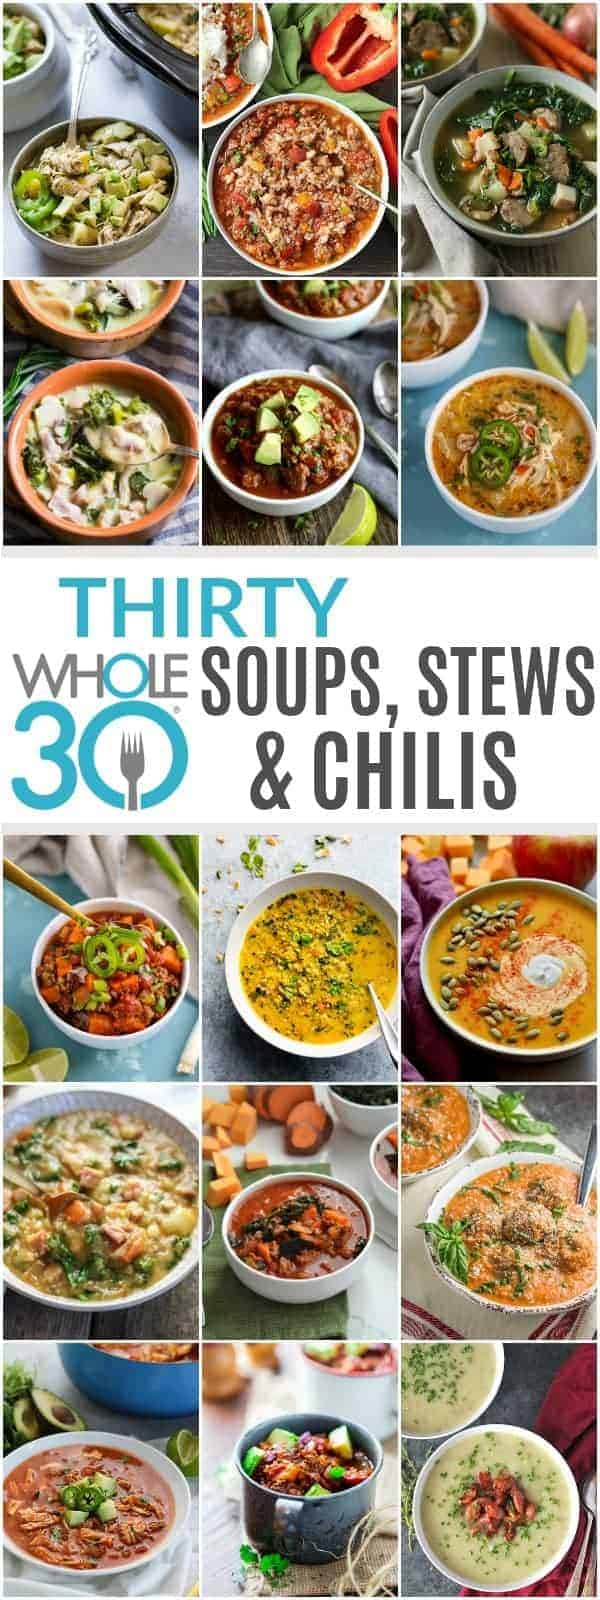 30 Whole30 Soups, Stews & Chilis | healthy soup recipes | whole30 meal ideas | whole30 recipes | whole30 chili recipes || The Real Food Dietitians #whole30soups #whole30recipe #whole30meals